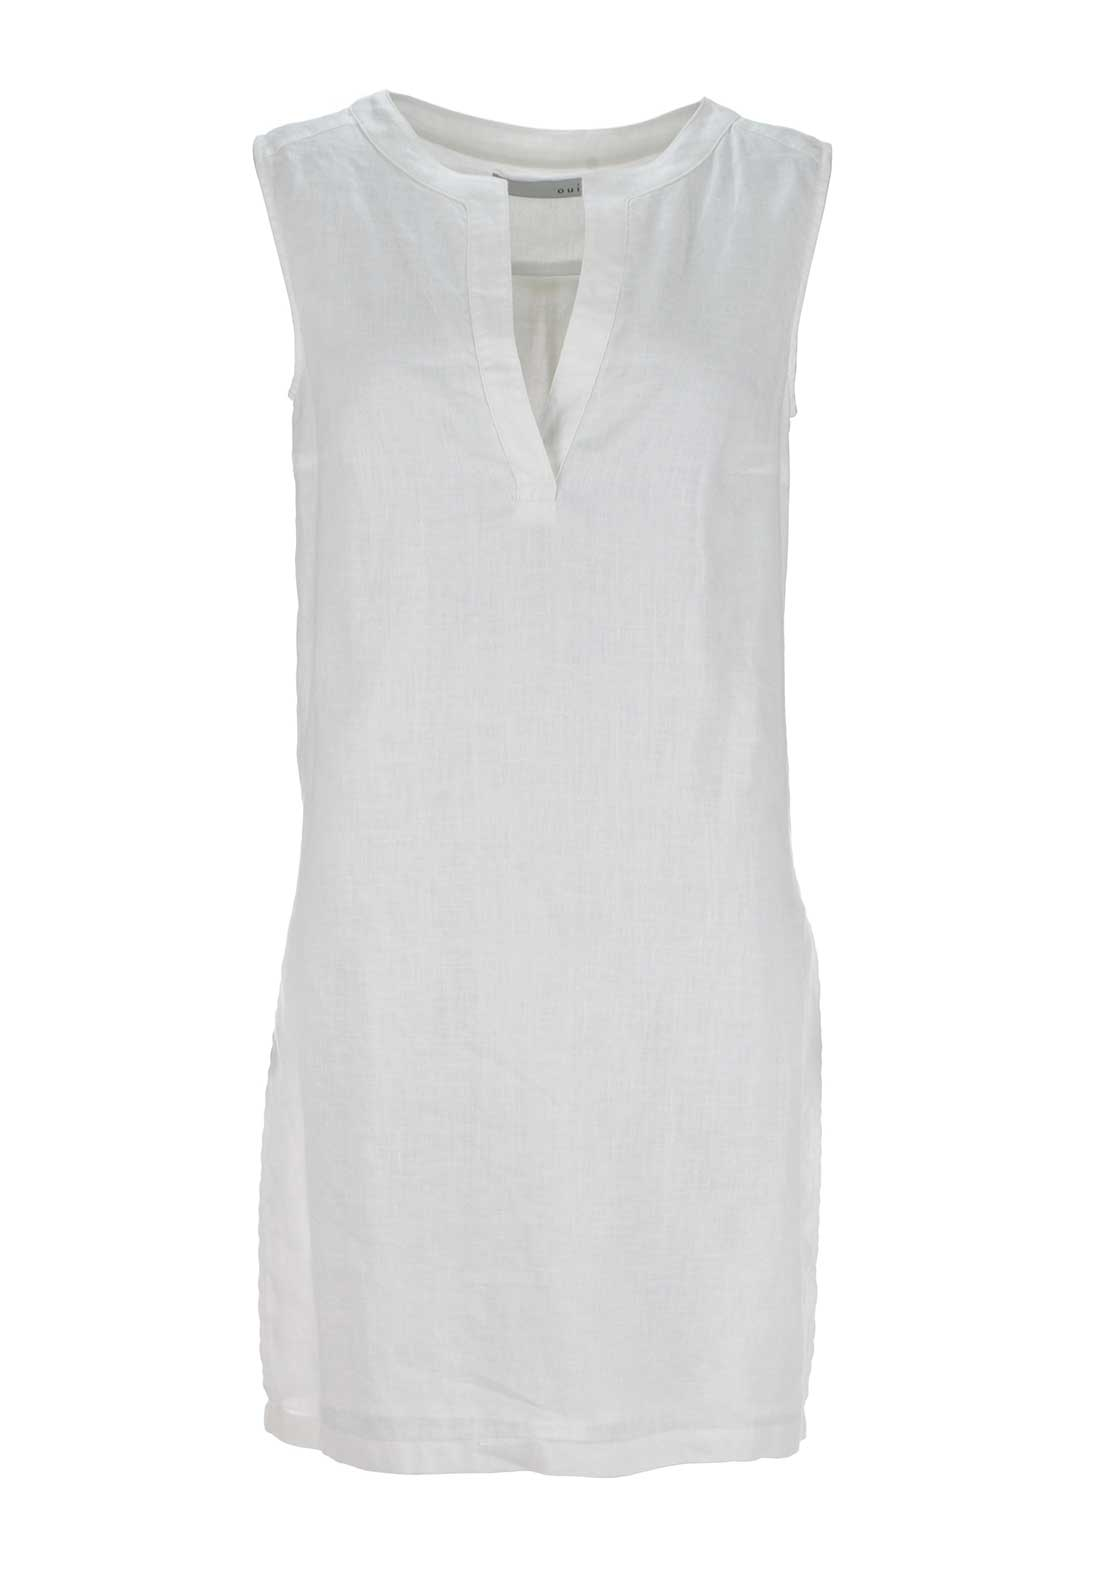 Oui Sleeveless Linen Tunic Top, White